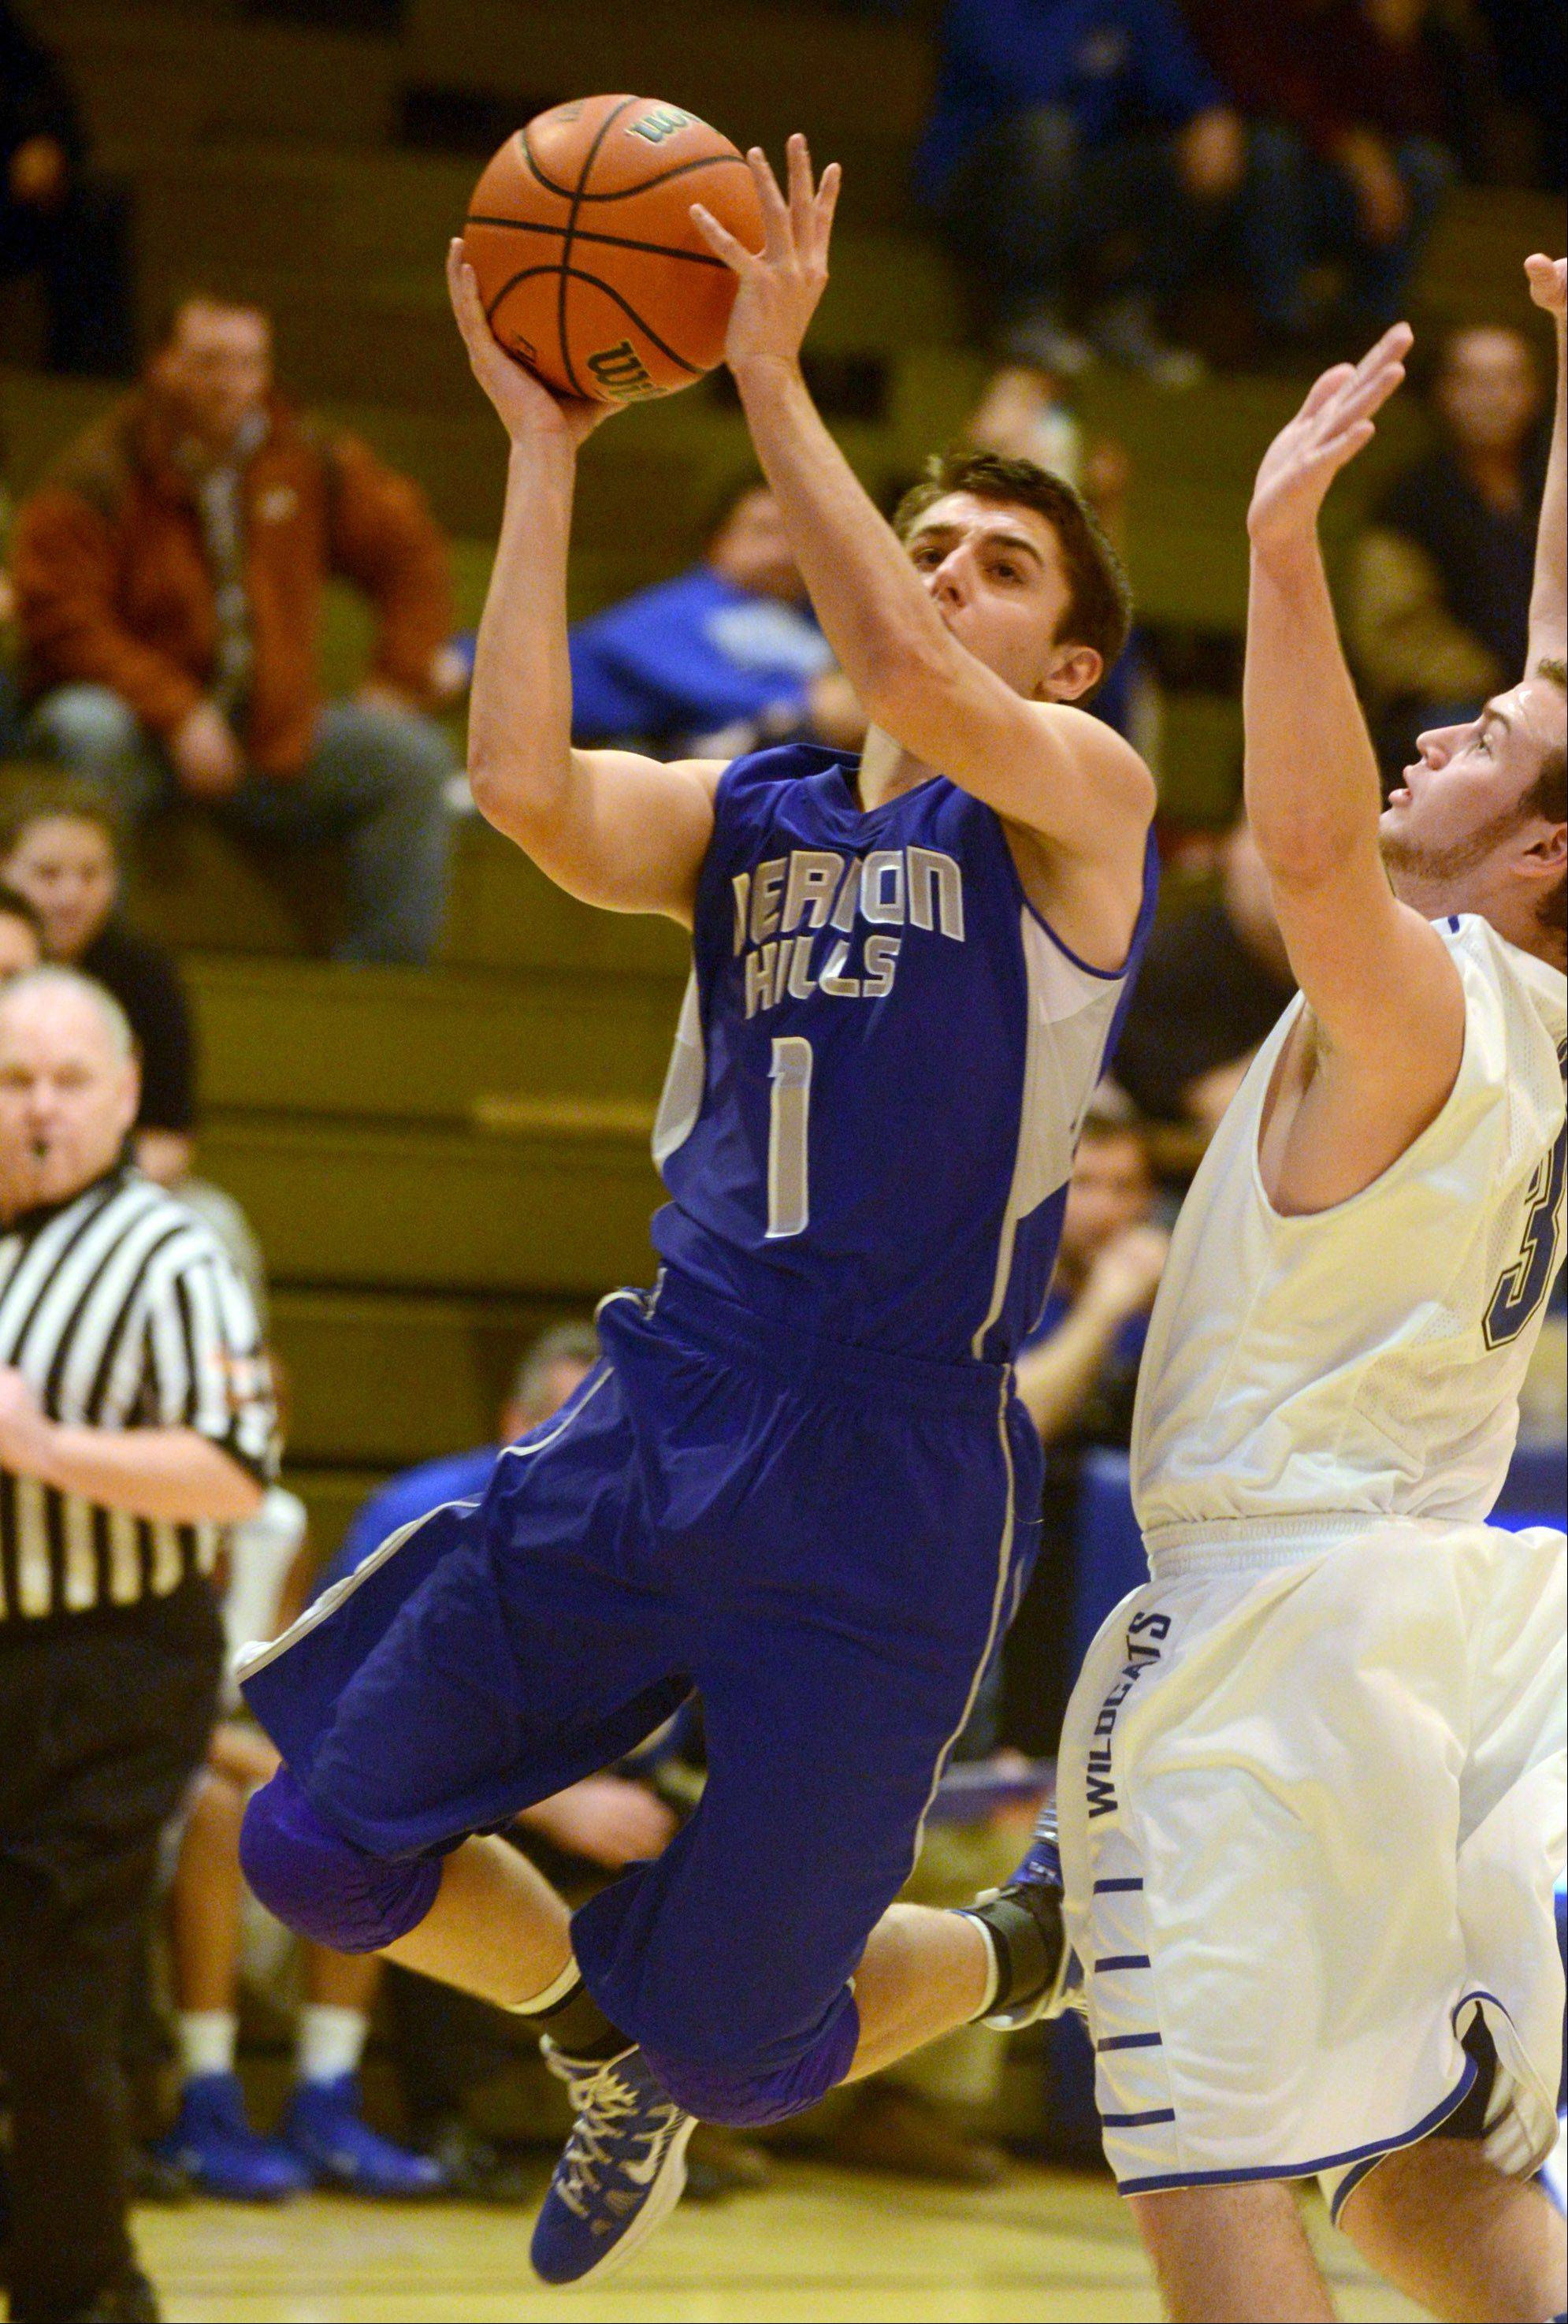 Vernon Hills' Robby Nardini, left, soars to the hoop past Wheeling's Chris Pierro.